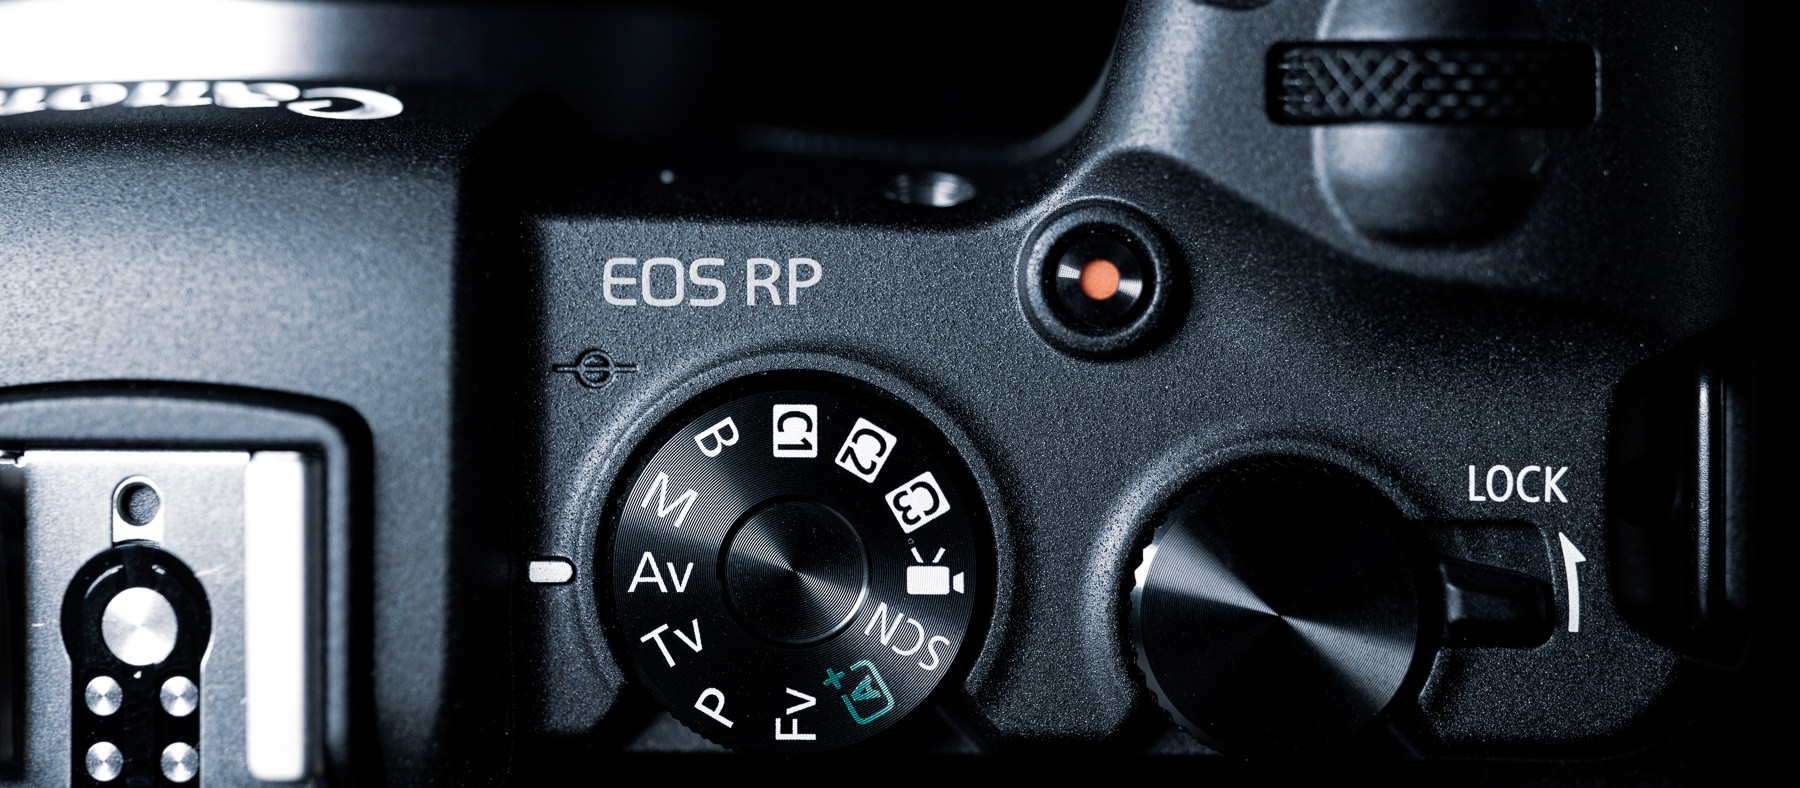 7a80f22e8e The Canon EOS RP is Canon's second entry in the new R series of mirrorless  cameras from Canada. This second full-frame mirrorless camera comes with a  ...